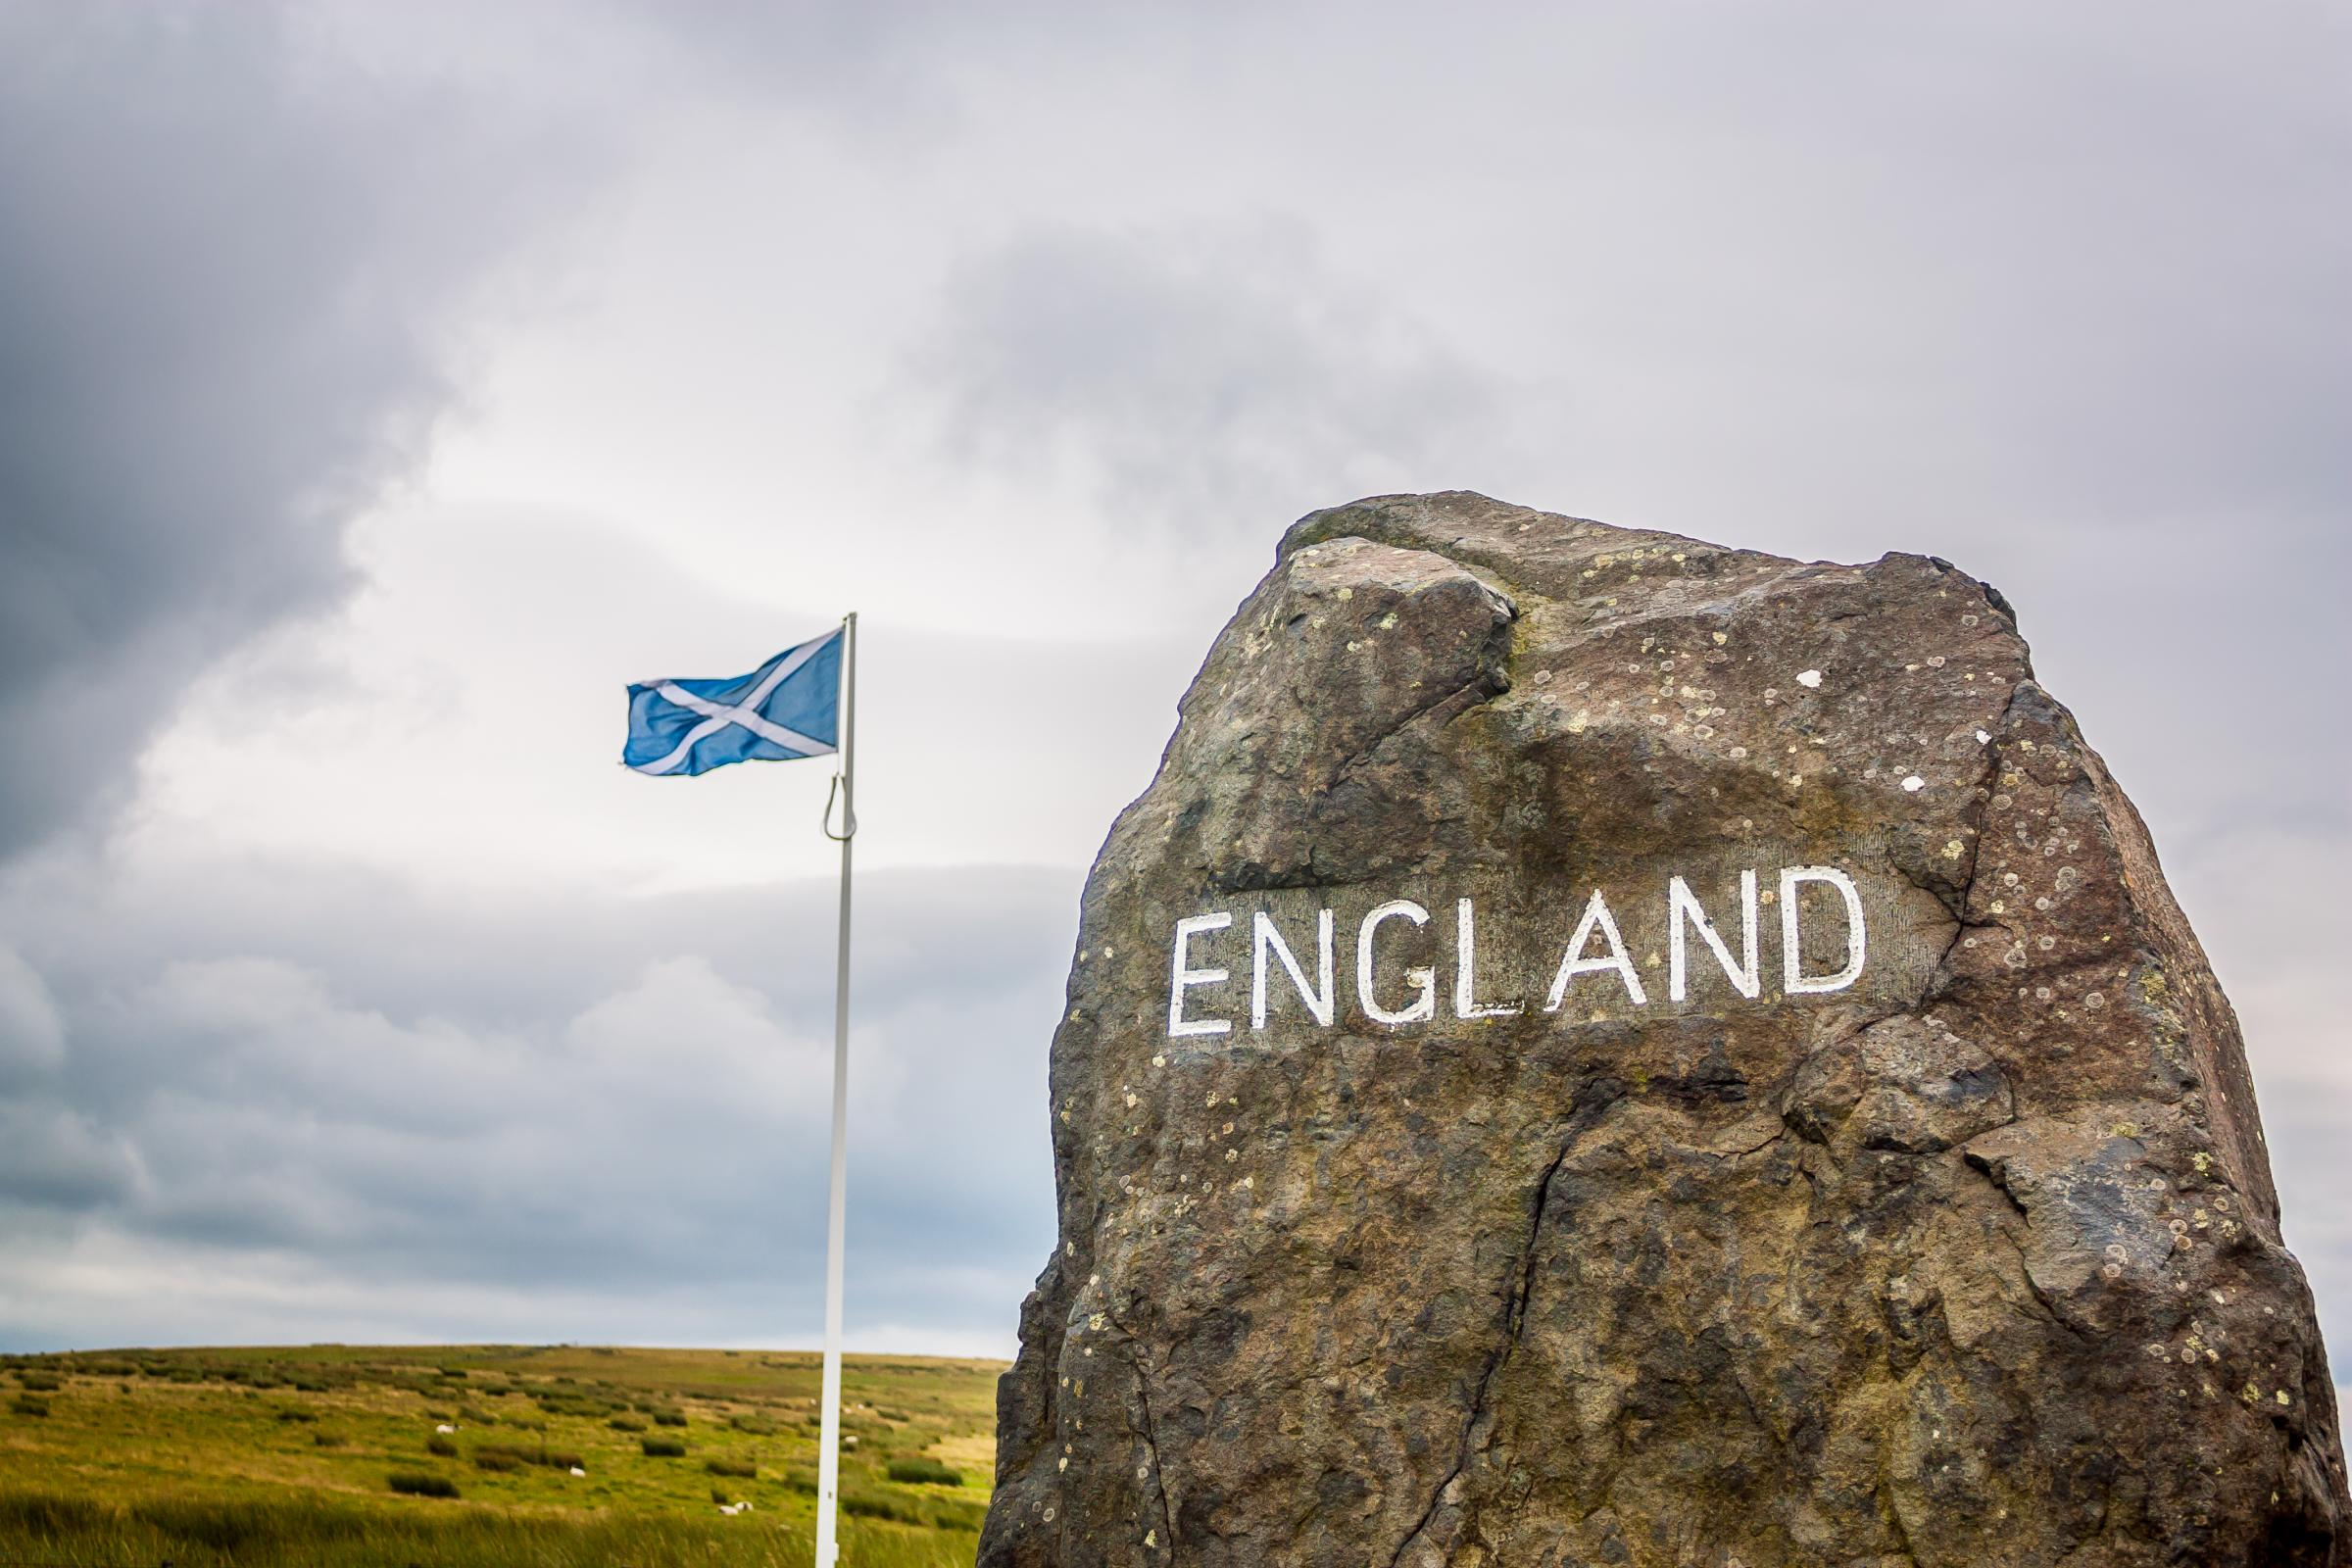 Idea of 'frictionless' border between indy Scotland and England dismissed by expert